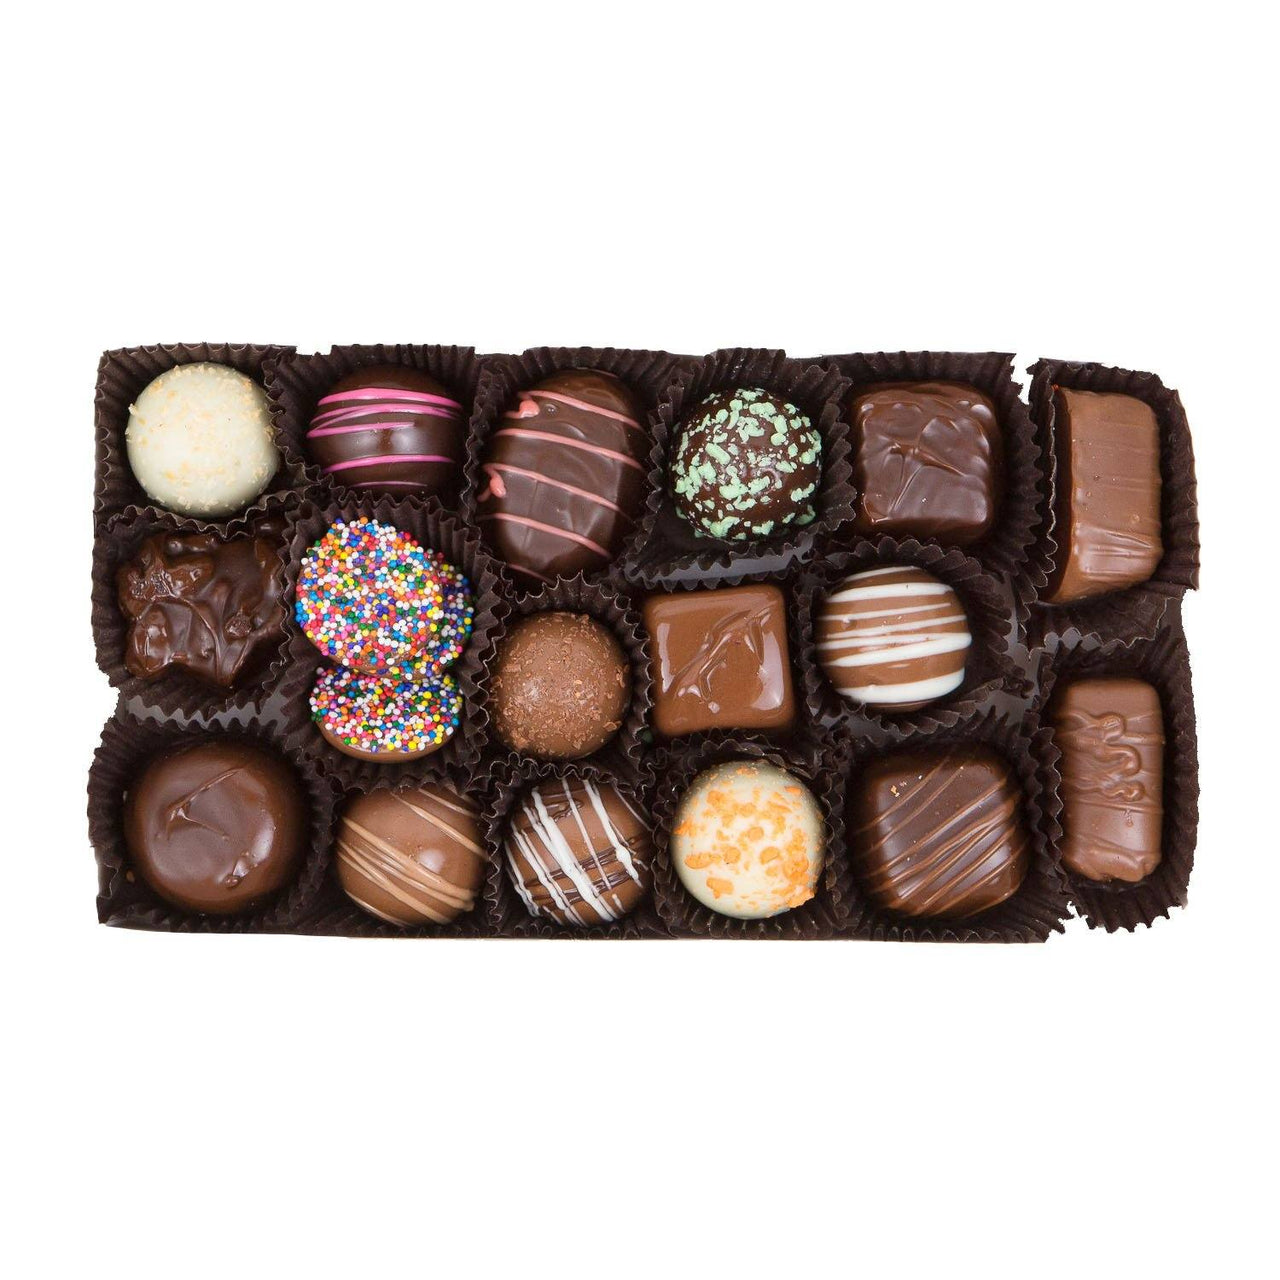 Gifts for Father in Law - Assorted Chocolate Gift Box - Jackie's Chocolate (1487129673763)